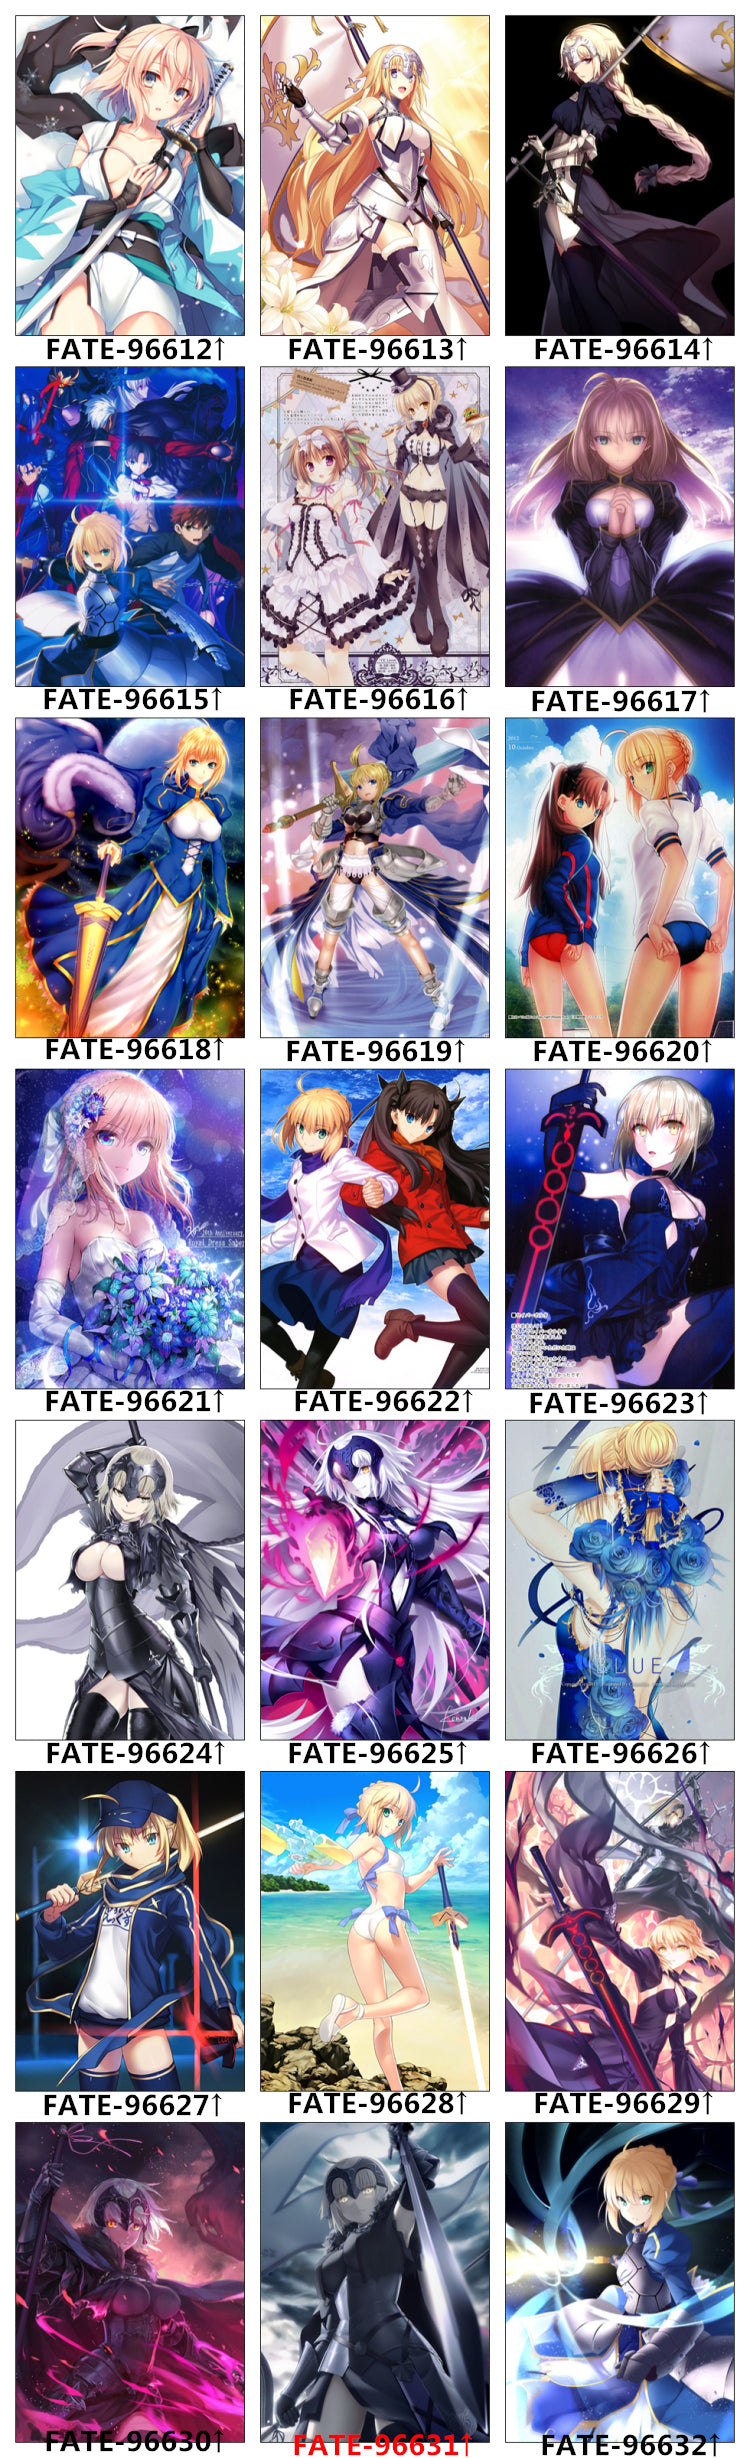 Anime Bed Set Designs - Fate Saber